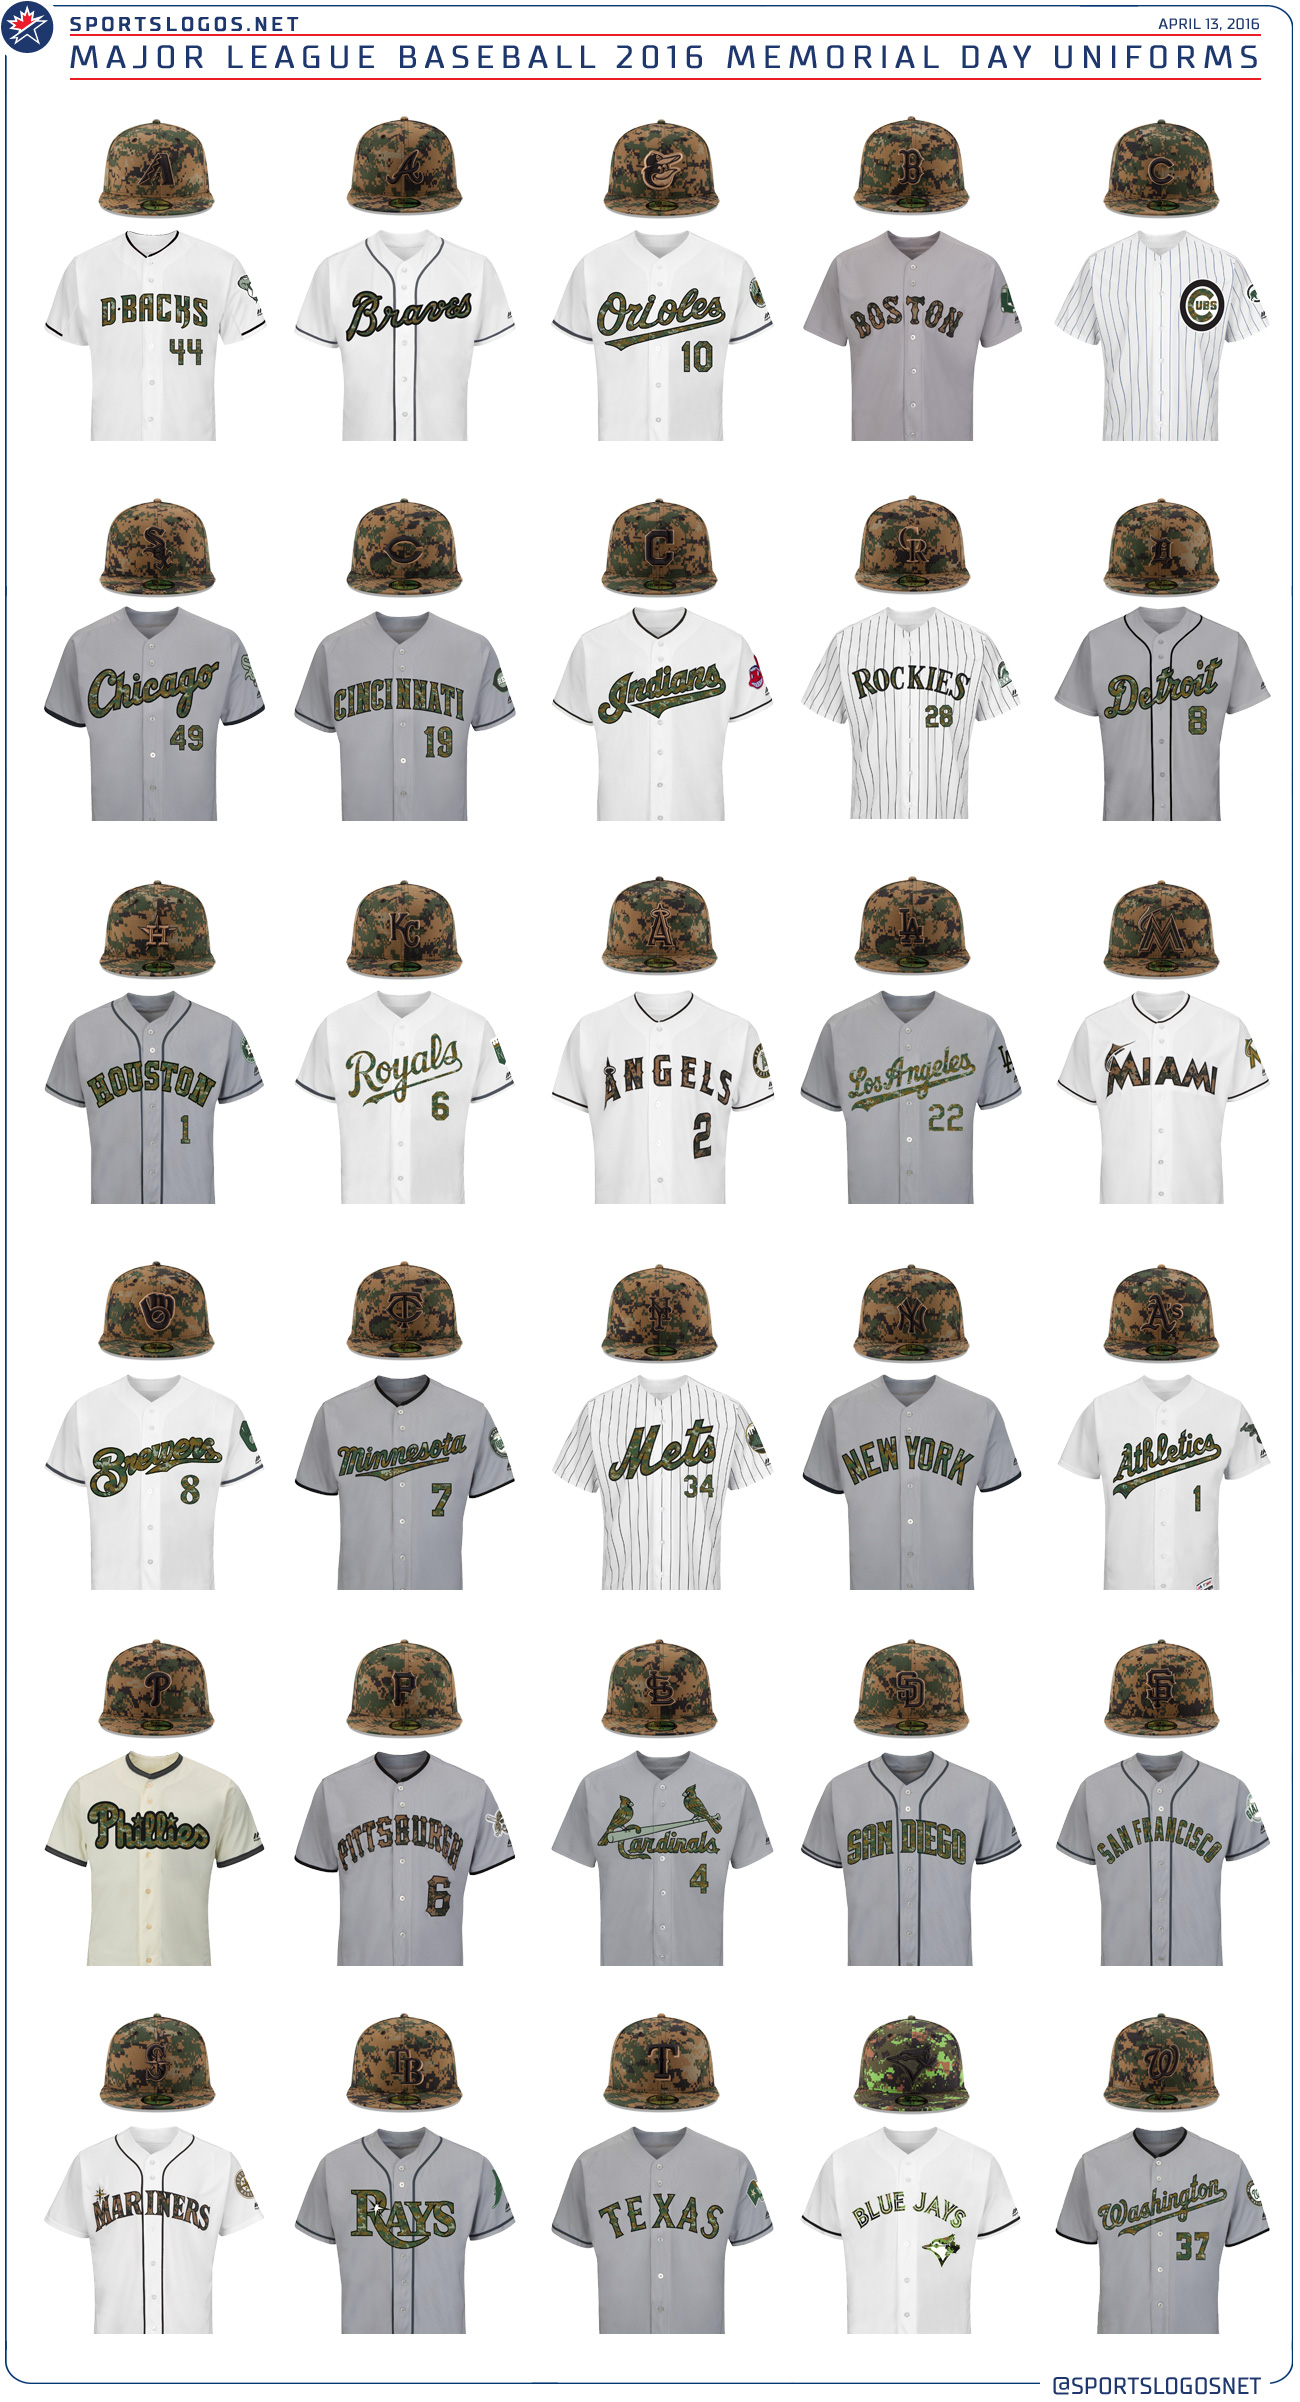 6209a2128 Click on this link for a bigger view of the graphic below. 2016-MLB-Memorial -Day-Uniforms